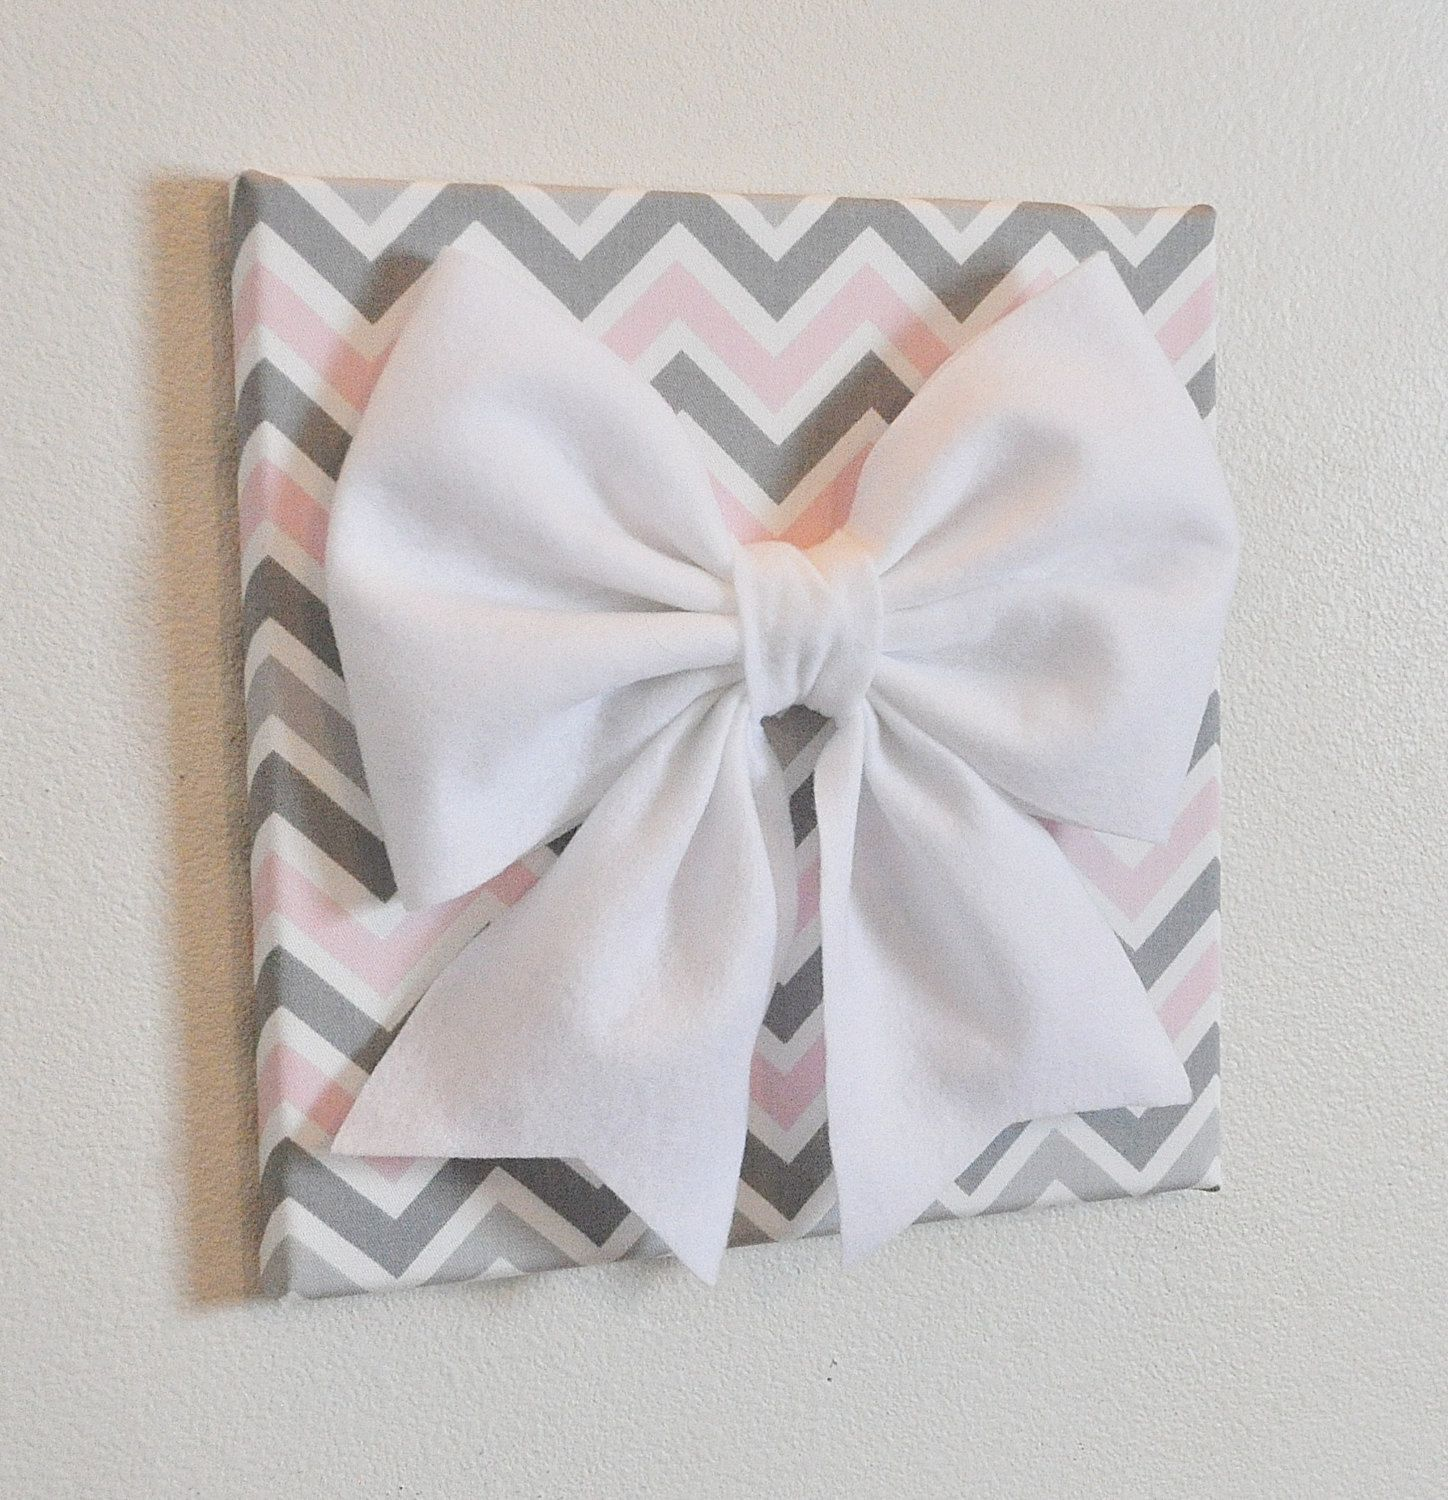 Wall decor large white bow on pink and gray chevron x